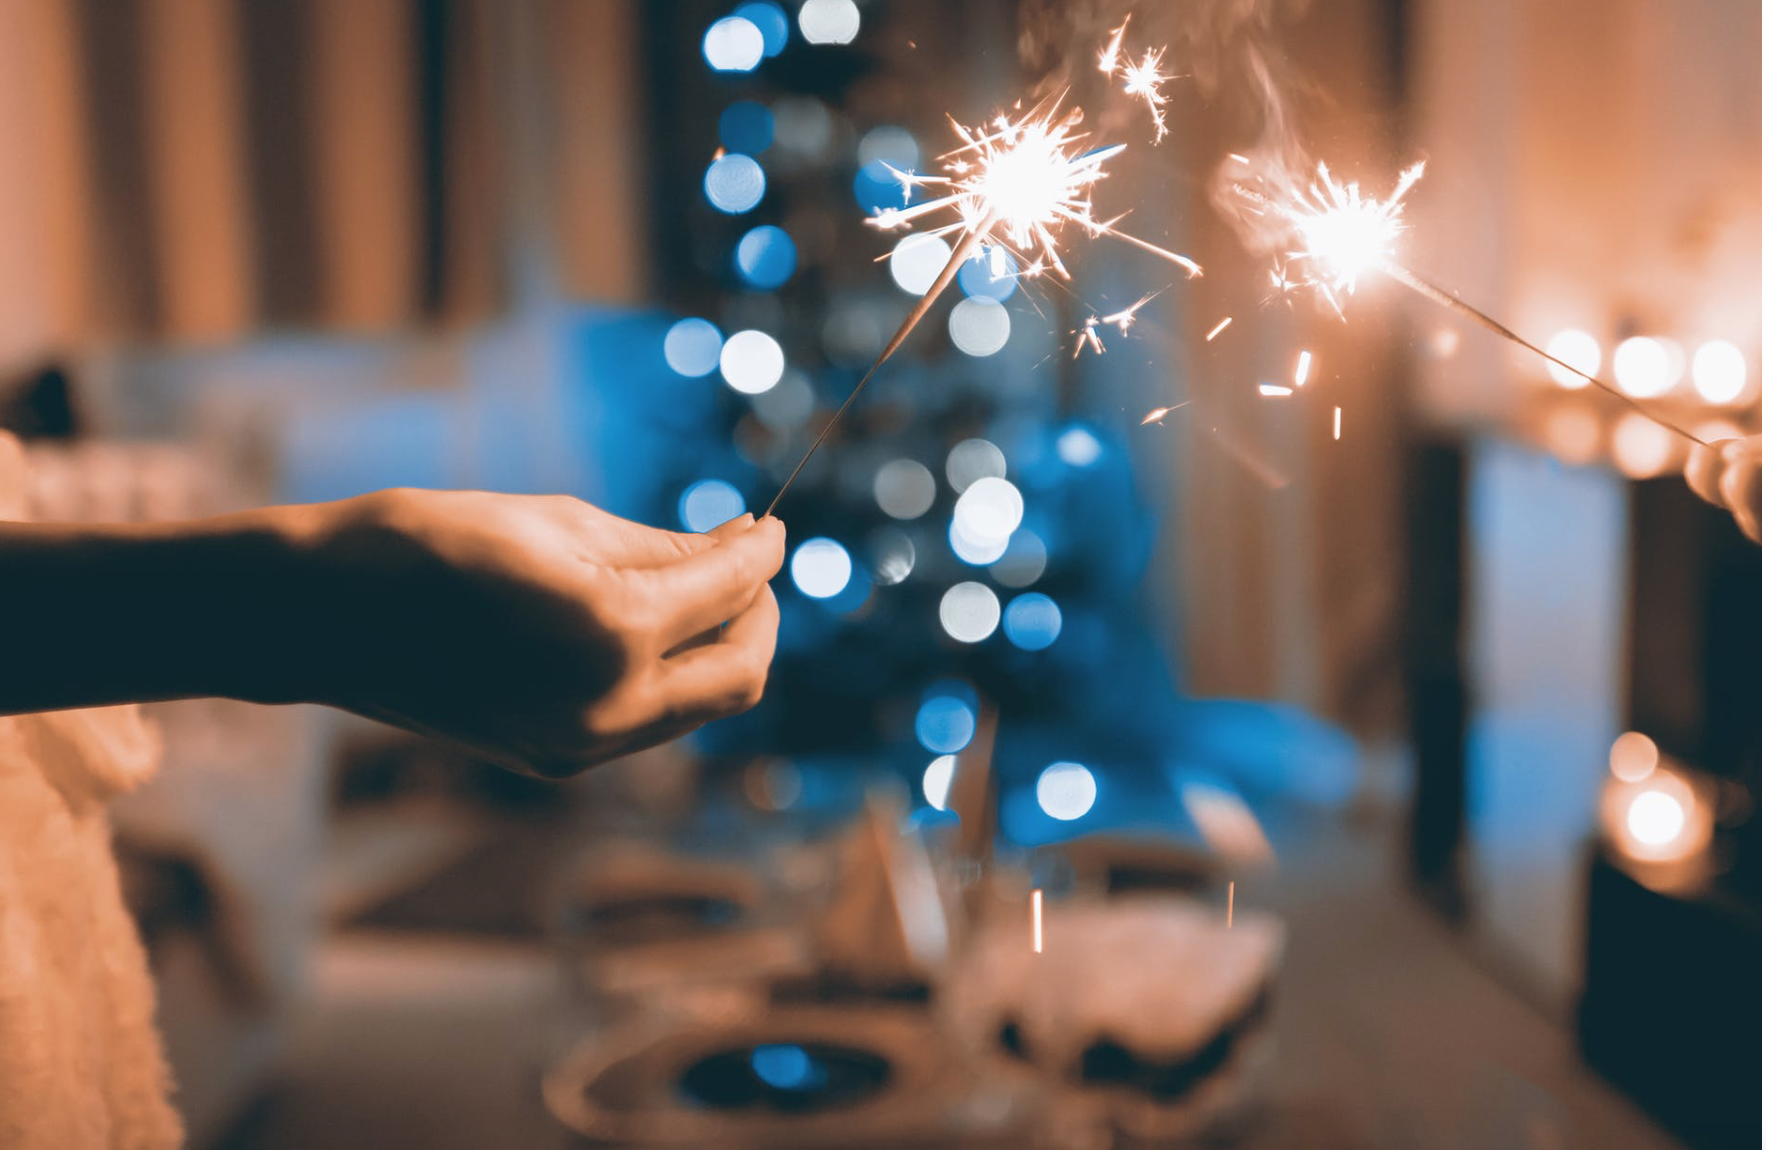 sparkler-held-by-child-hand